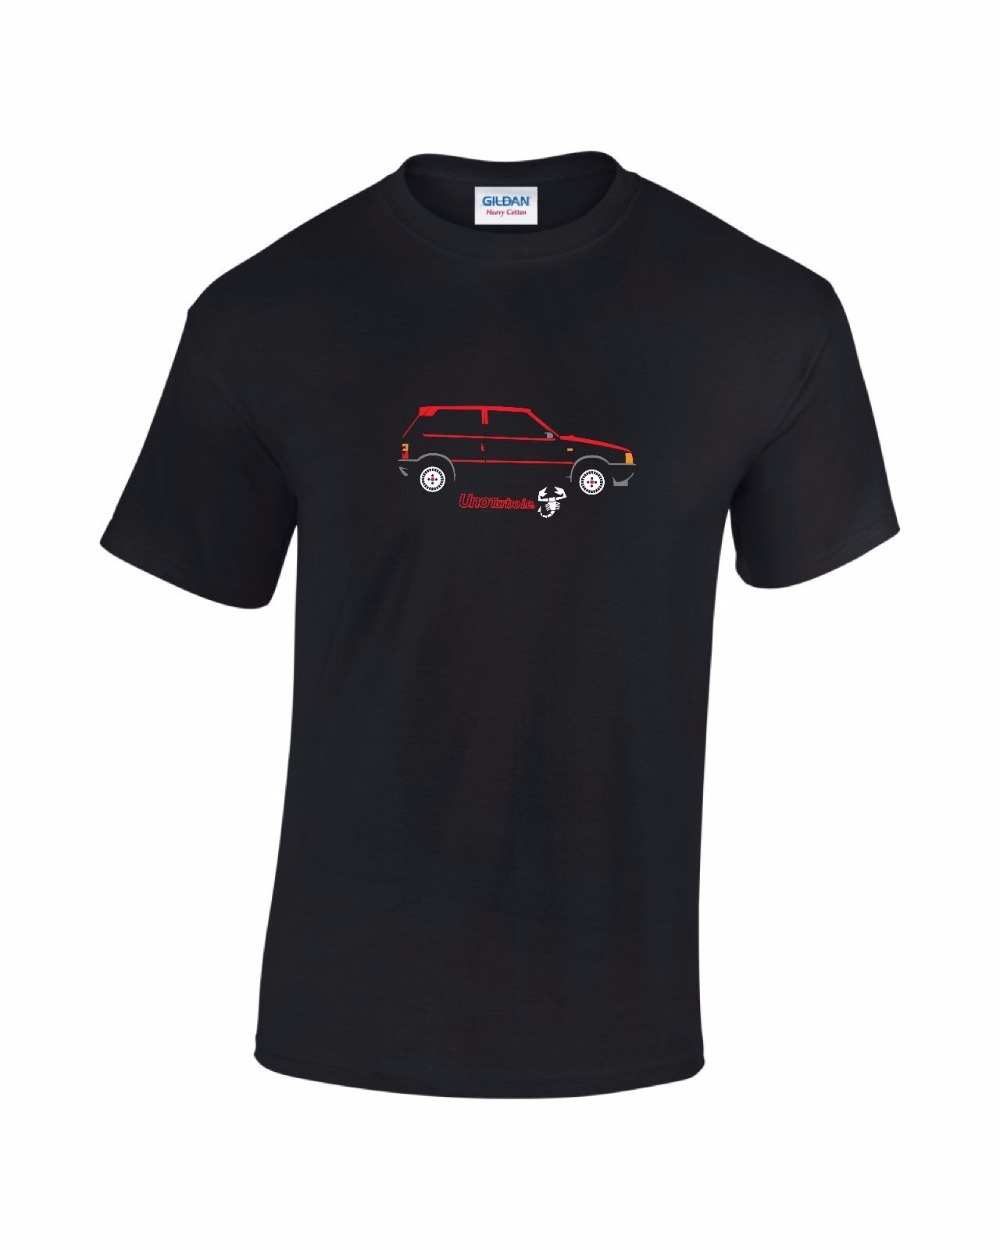 Fitted T Shirts Short Sleeve Top Fiat Uno Turbo Ie Mens Printed Car T-Shirt Crew Neck T Shirt For Men